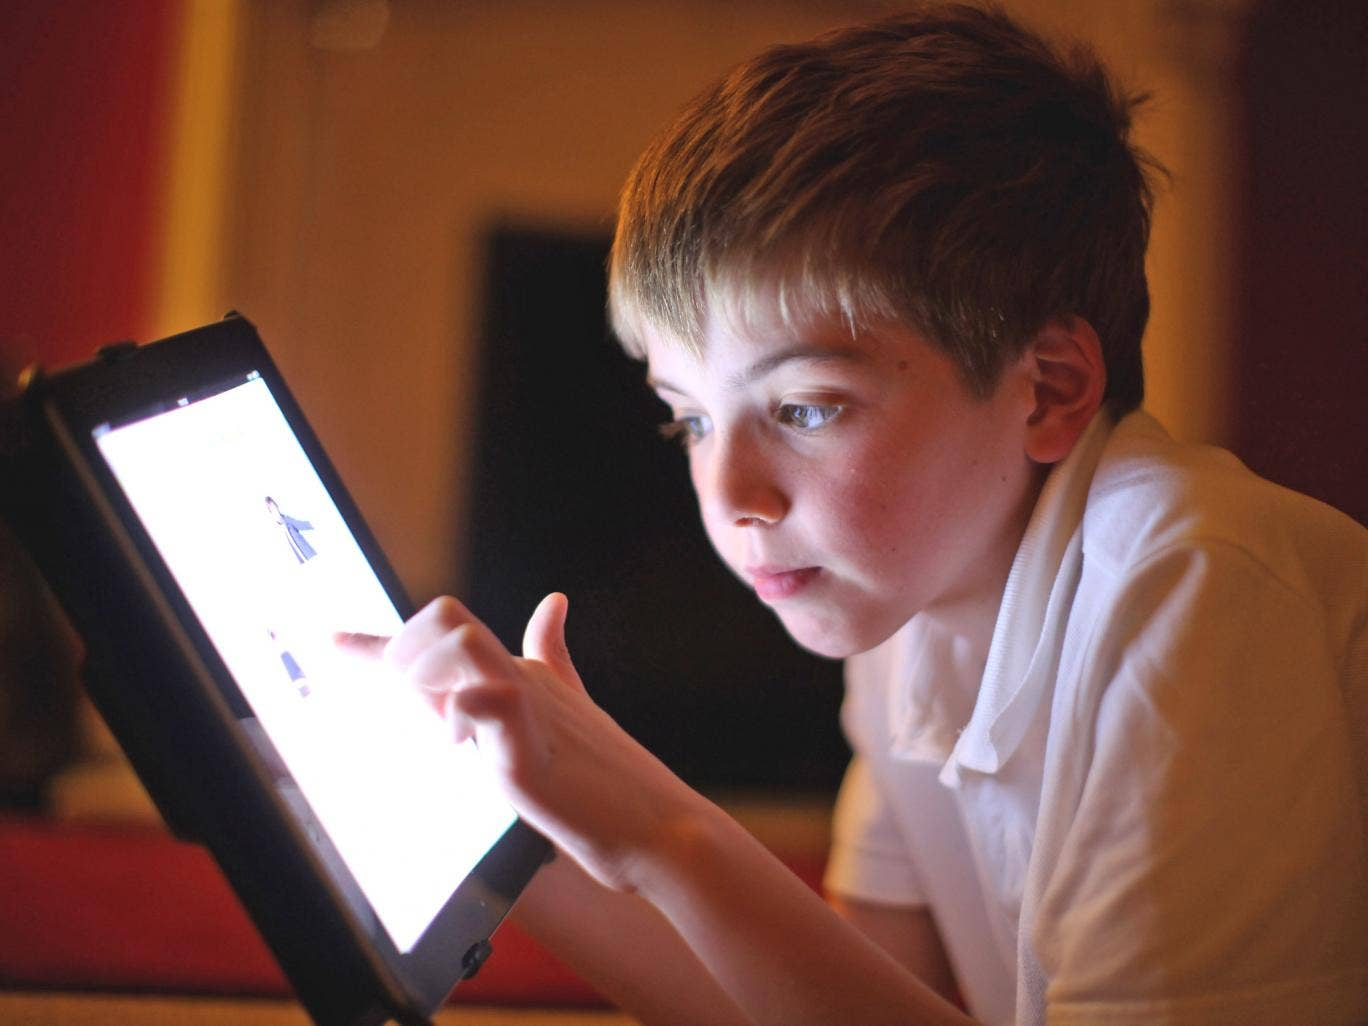 More than a quarter of kids have sneakily updated a parent's Facebook status